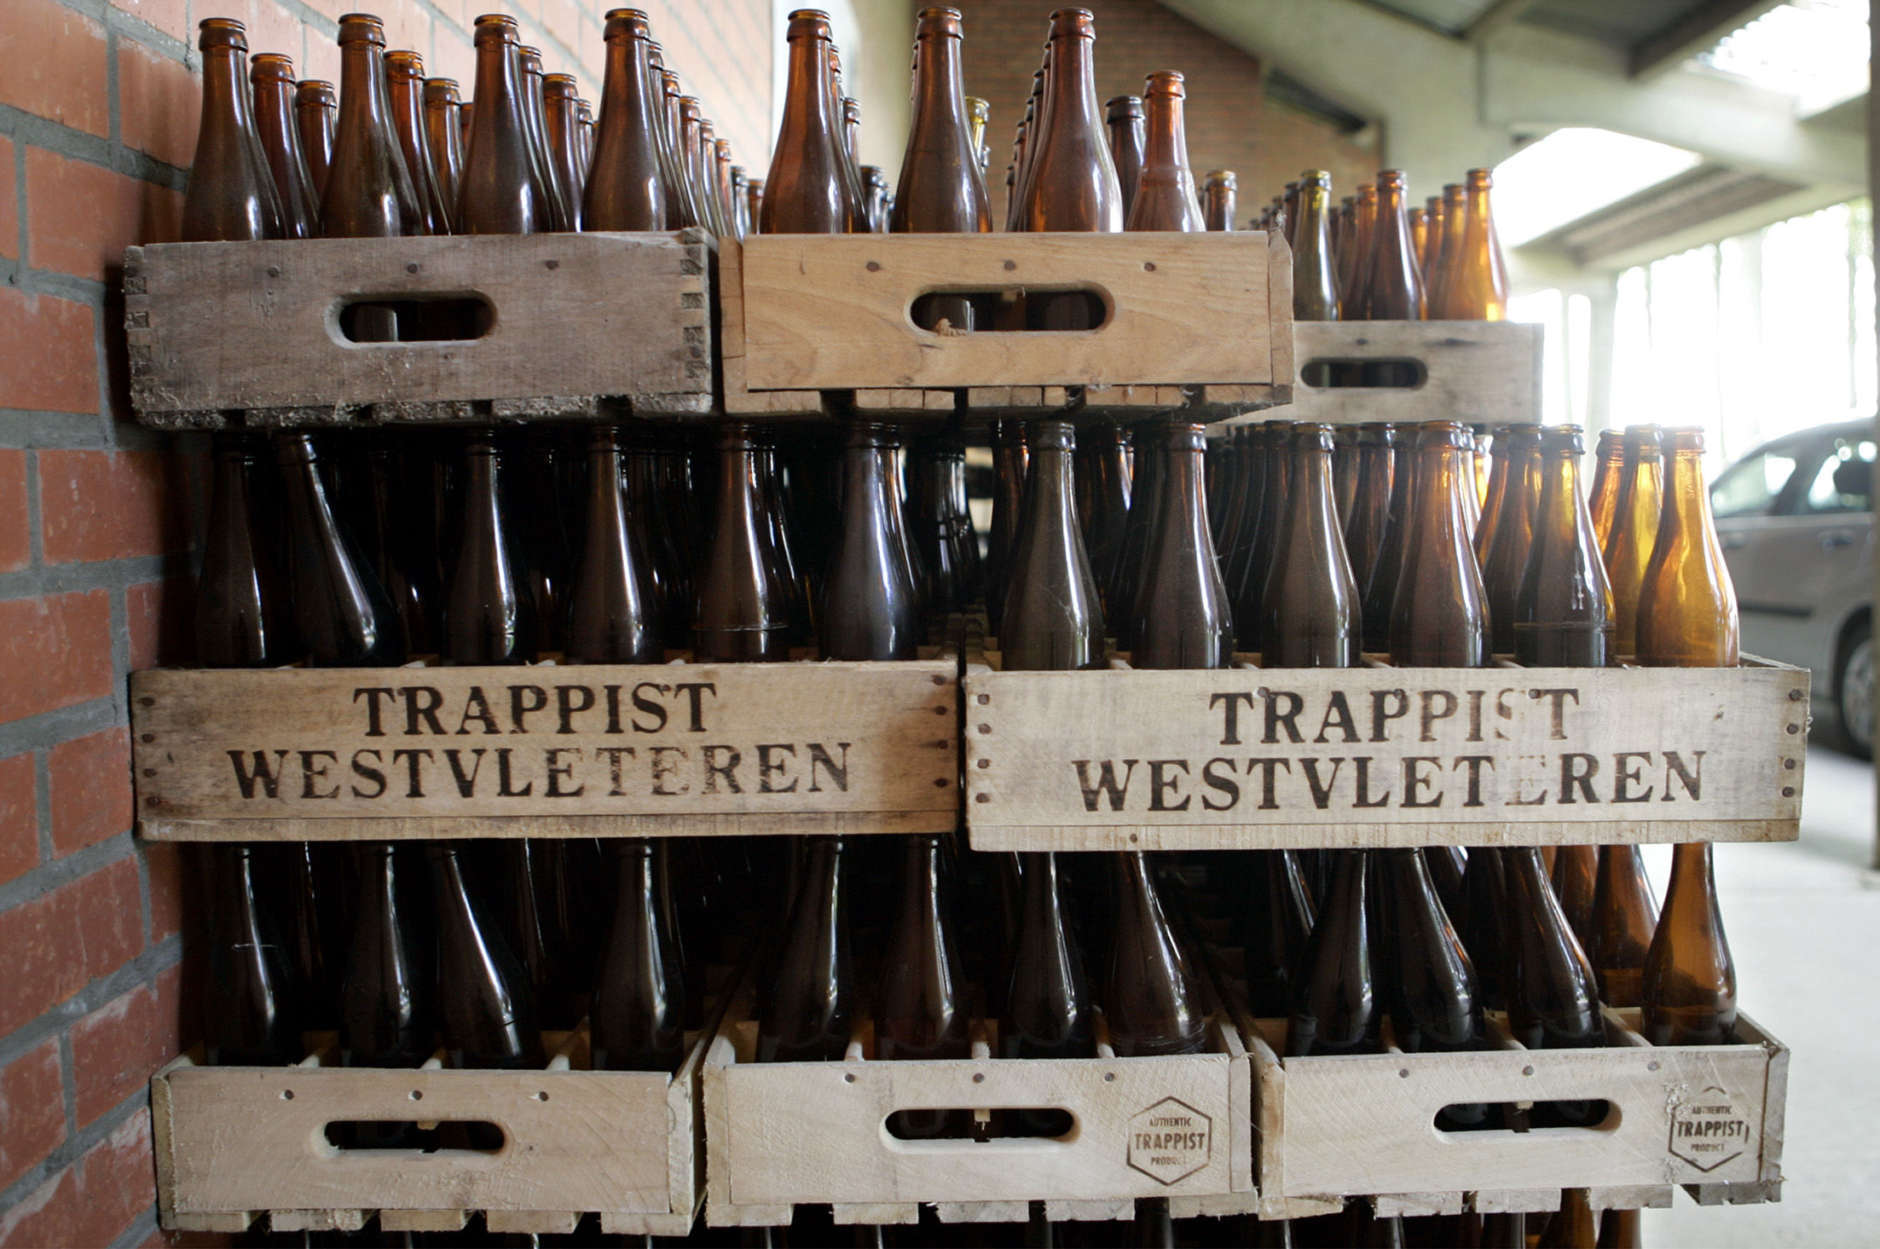 Crates of empty beer bottles are stacked at the Saint Sixtus Abbey in Westvleteren, western Belgium, Tuesday Aug.16, 2005. A website survey of thousands of beer enthusiasts from 65 countries rated the Westvleteren 12 beer as the world's best, forcing the Abbey to stop selling one of its famous beers as it was sold out immediately. The abbey, home to 30 Cistercian and Trappist monks who lead a life of seclusion, prayer, and beer-brewing, doesn't want to raise production as their life in the abbey comes first, not the brewery. (AP Photo/Yves Logghe)